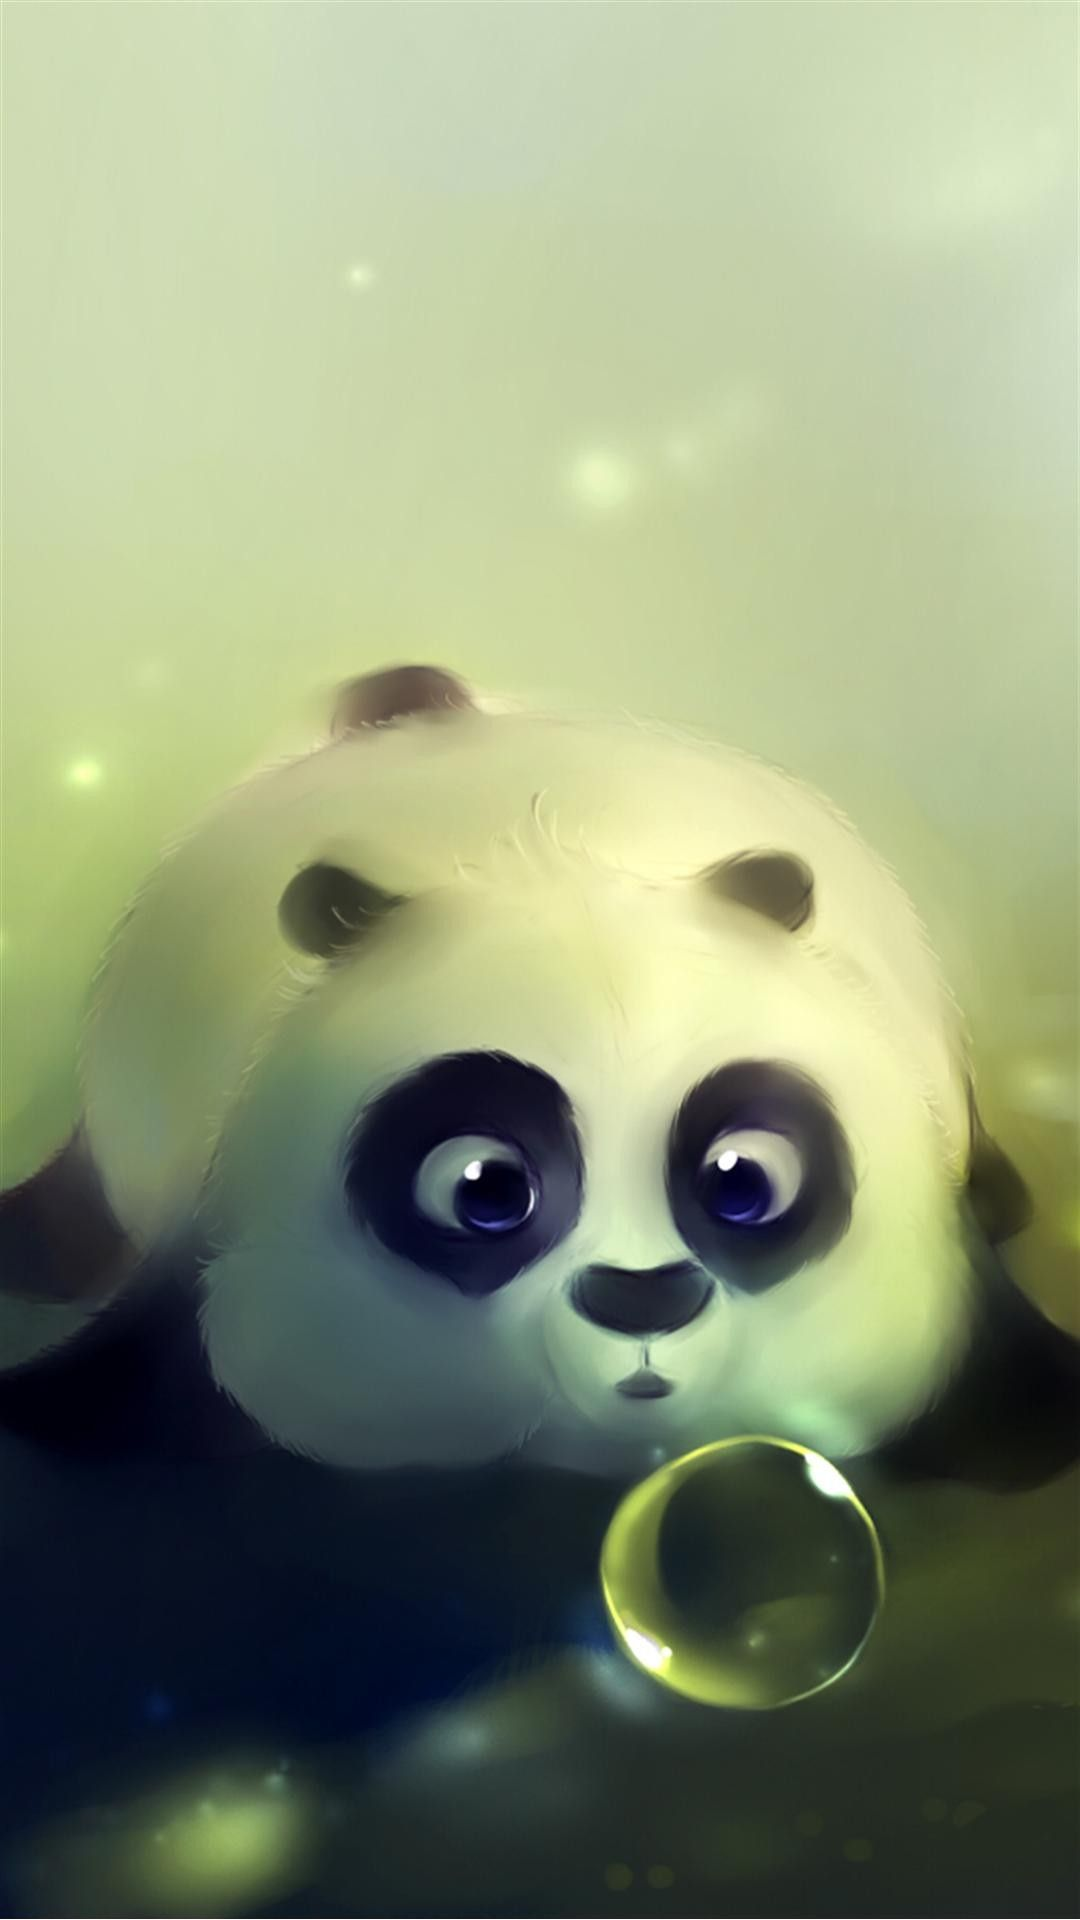 Kung fu panda iphone wallpaper - Kung Fu Panda Iphone Wallpaper 28